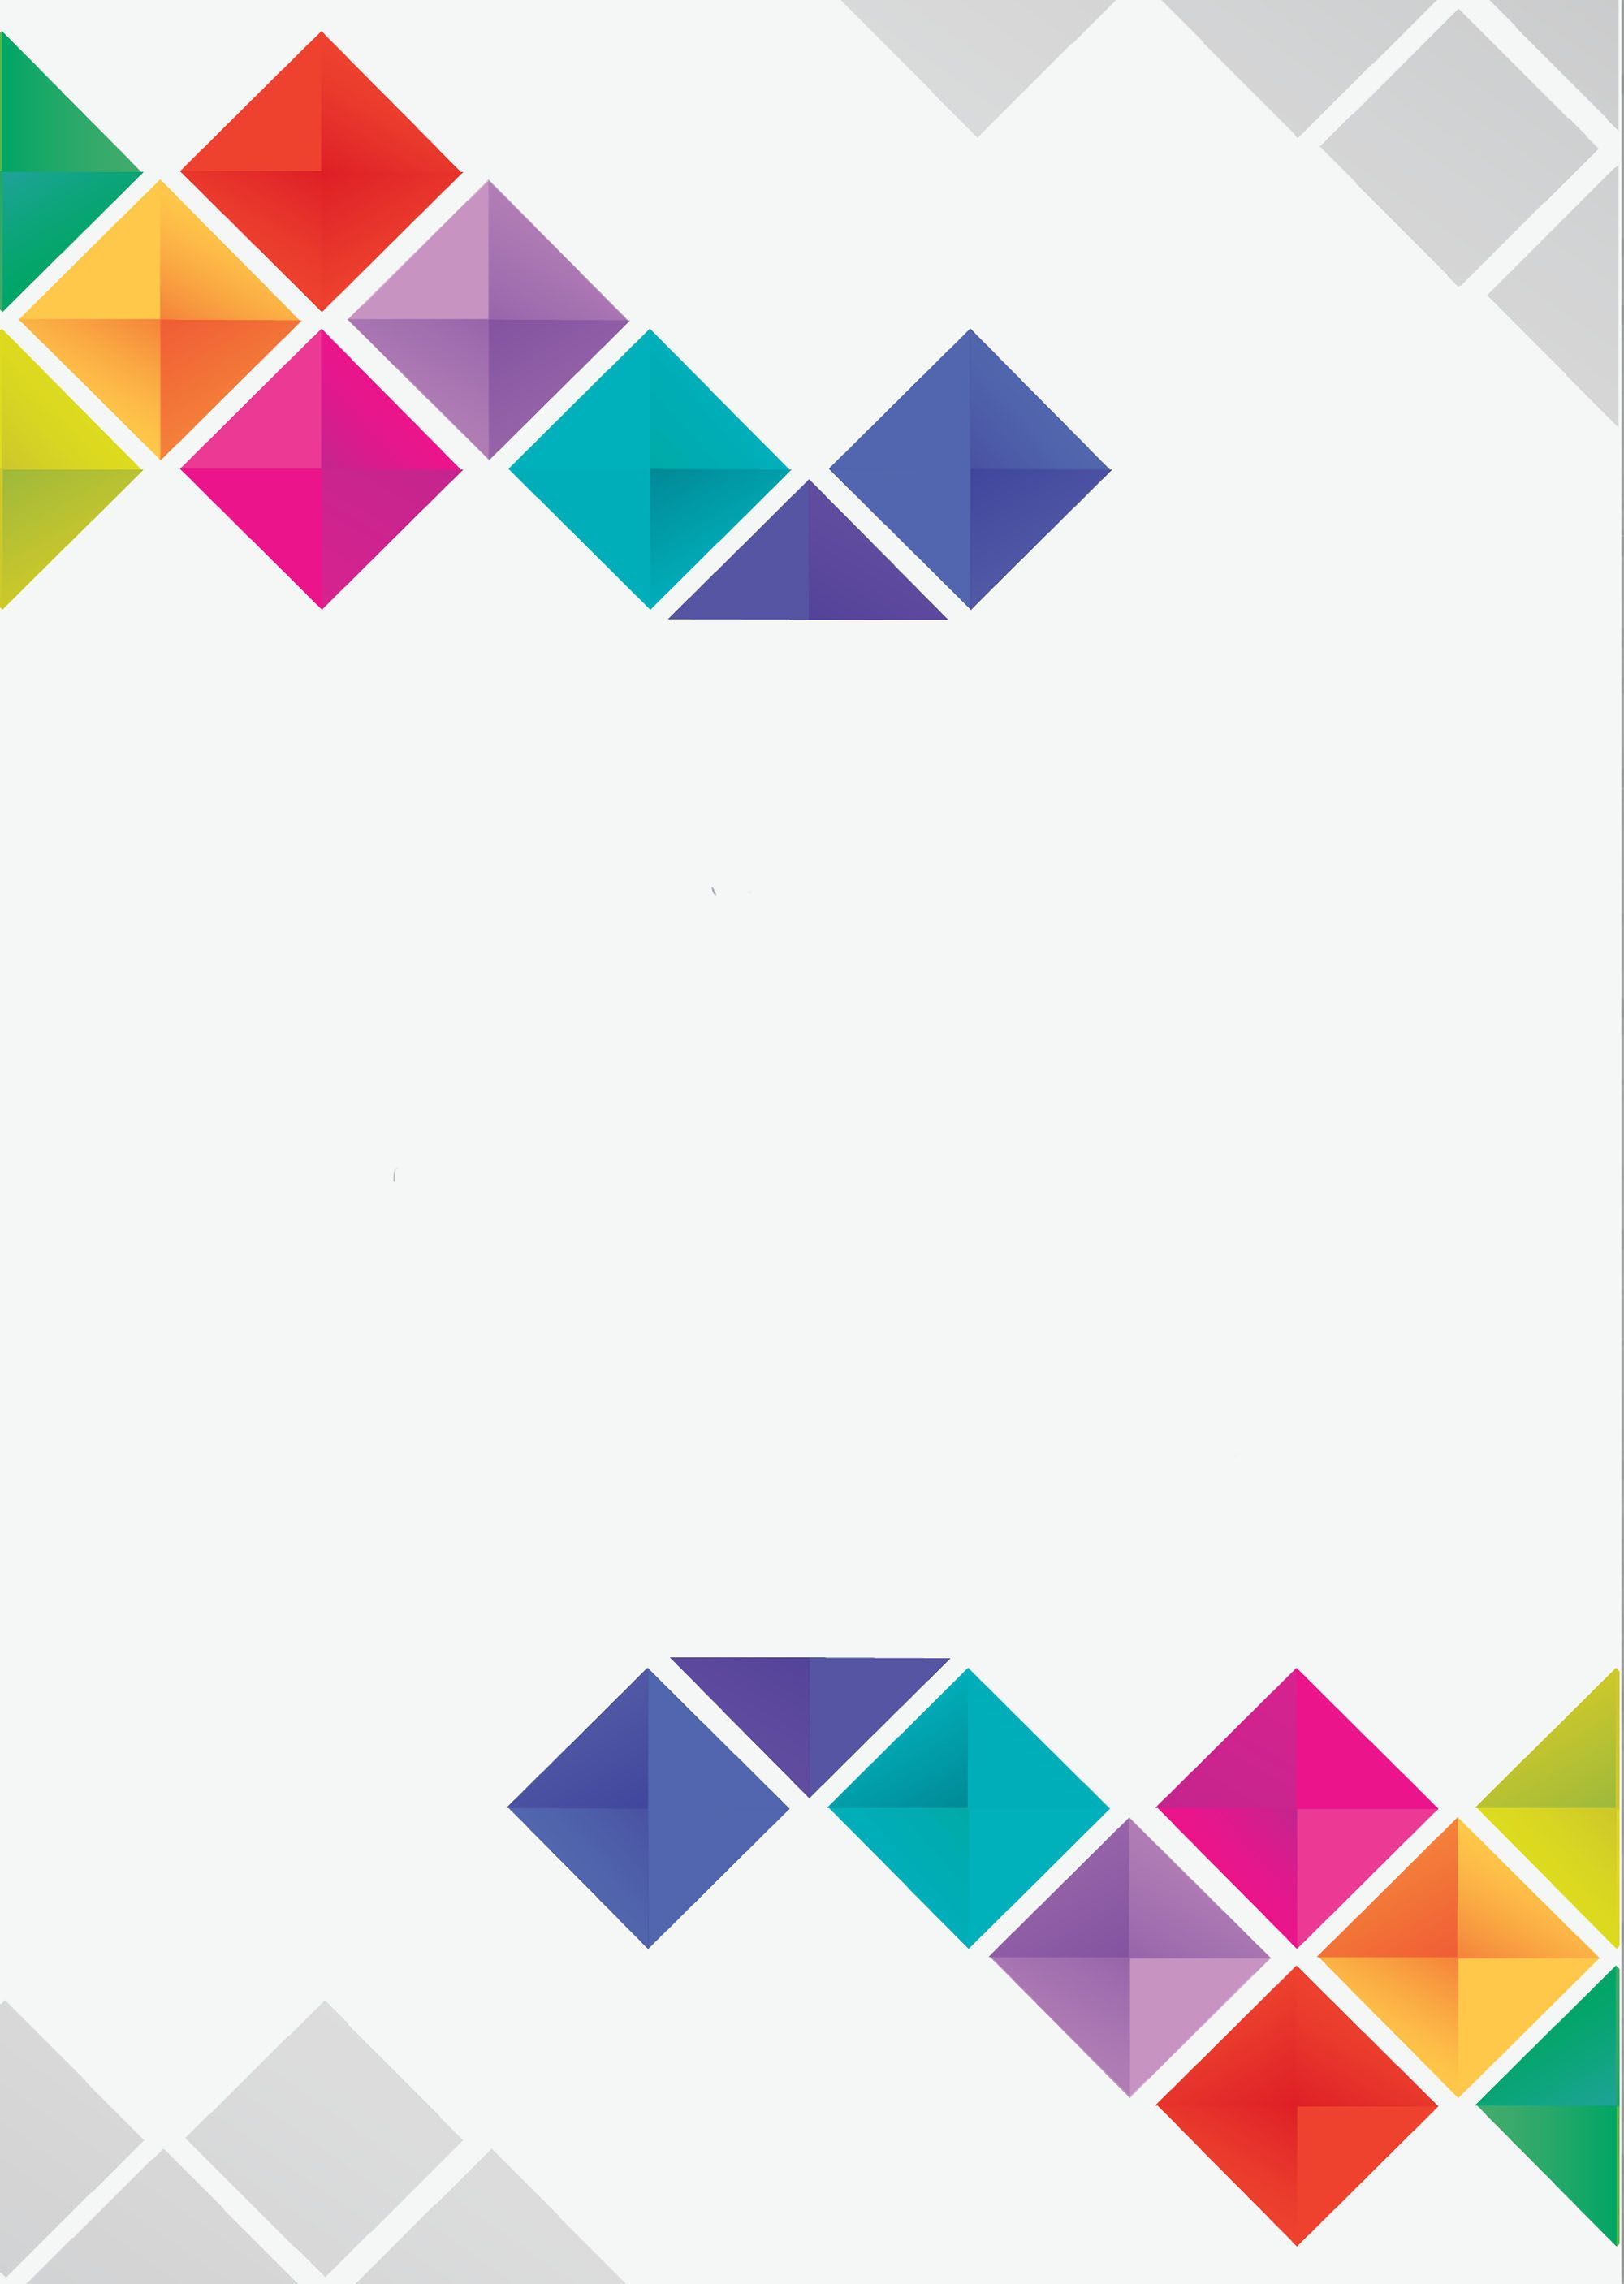 Abstract Geometric Color Pattern Posters in 2020